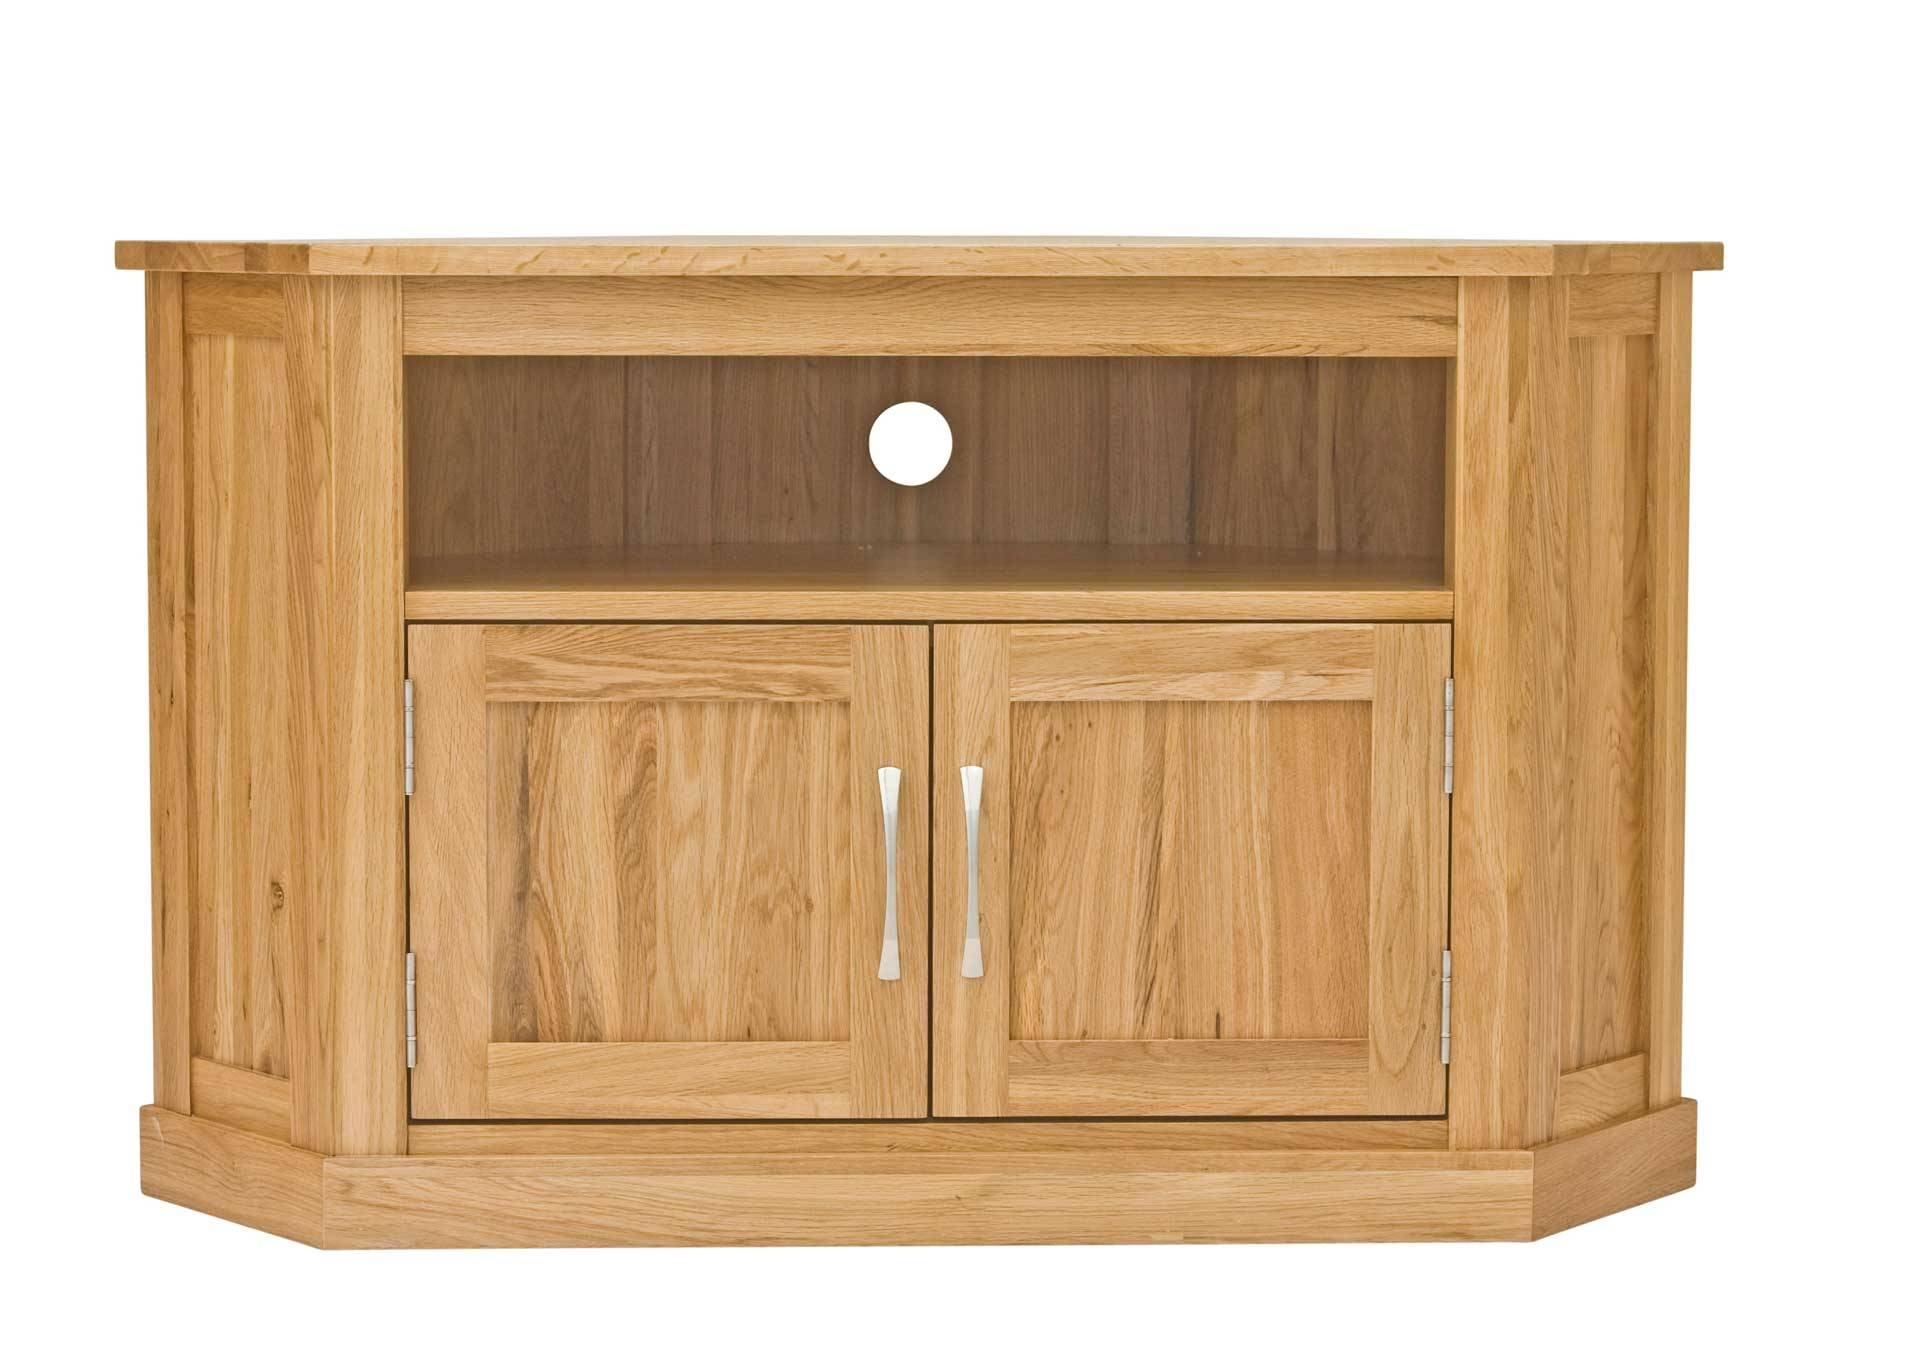 Classic Oak Corner Television Cabinet | Hampshire Furniture with Corner Tv Cabinets (Image 4 of 15)